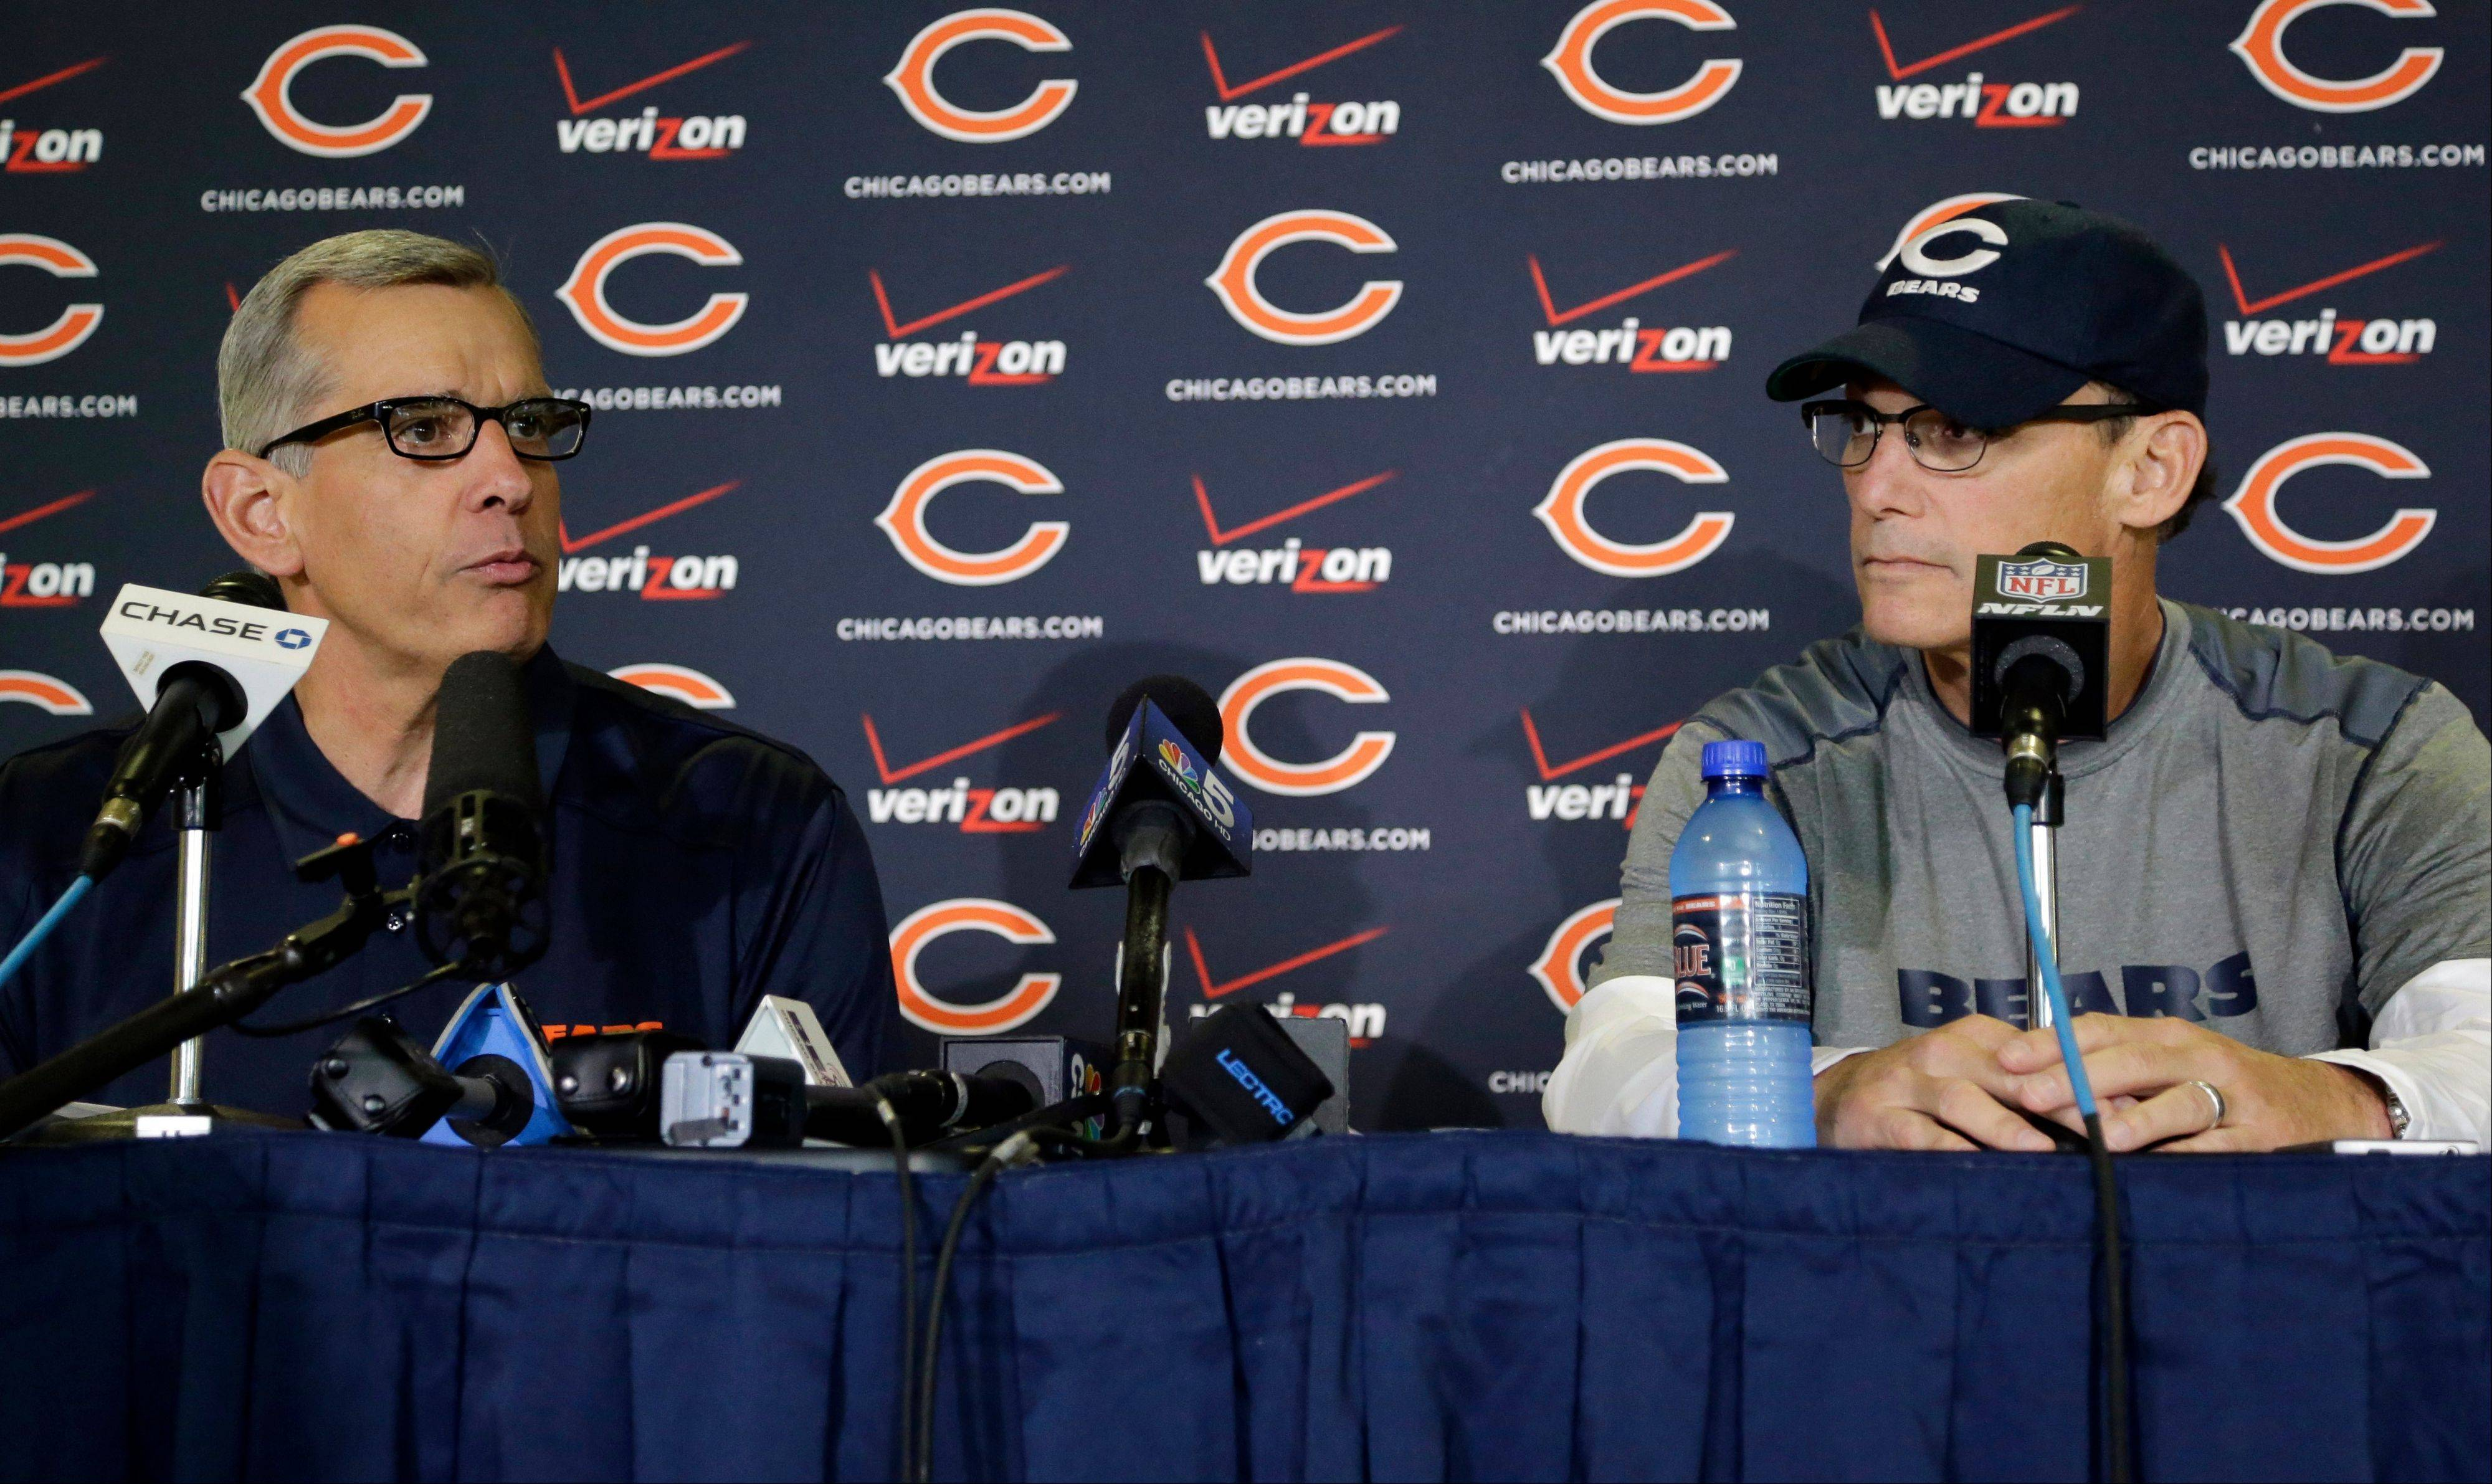 Now that general manager Phil Emery, left, and coach Marc Trestman have the offense headed in the right direction, it's time to make the defense at least functional.